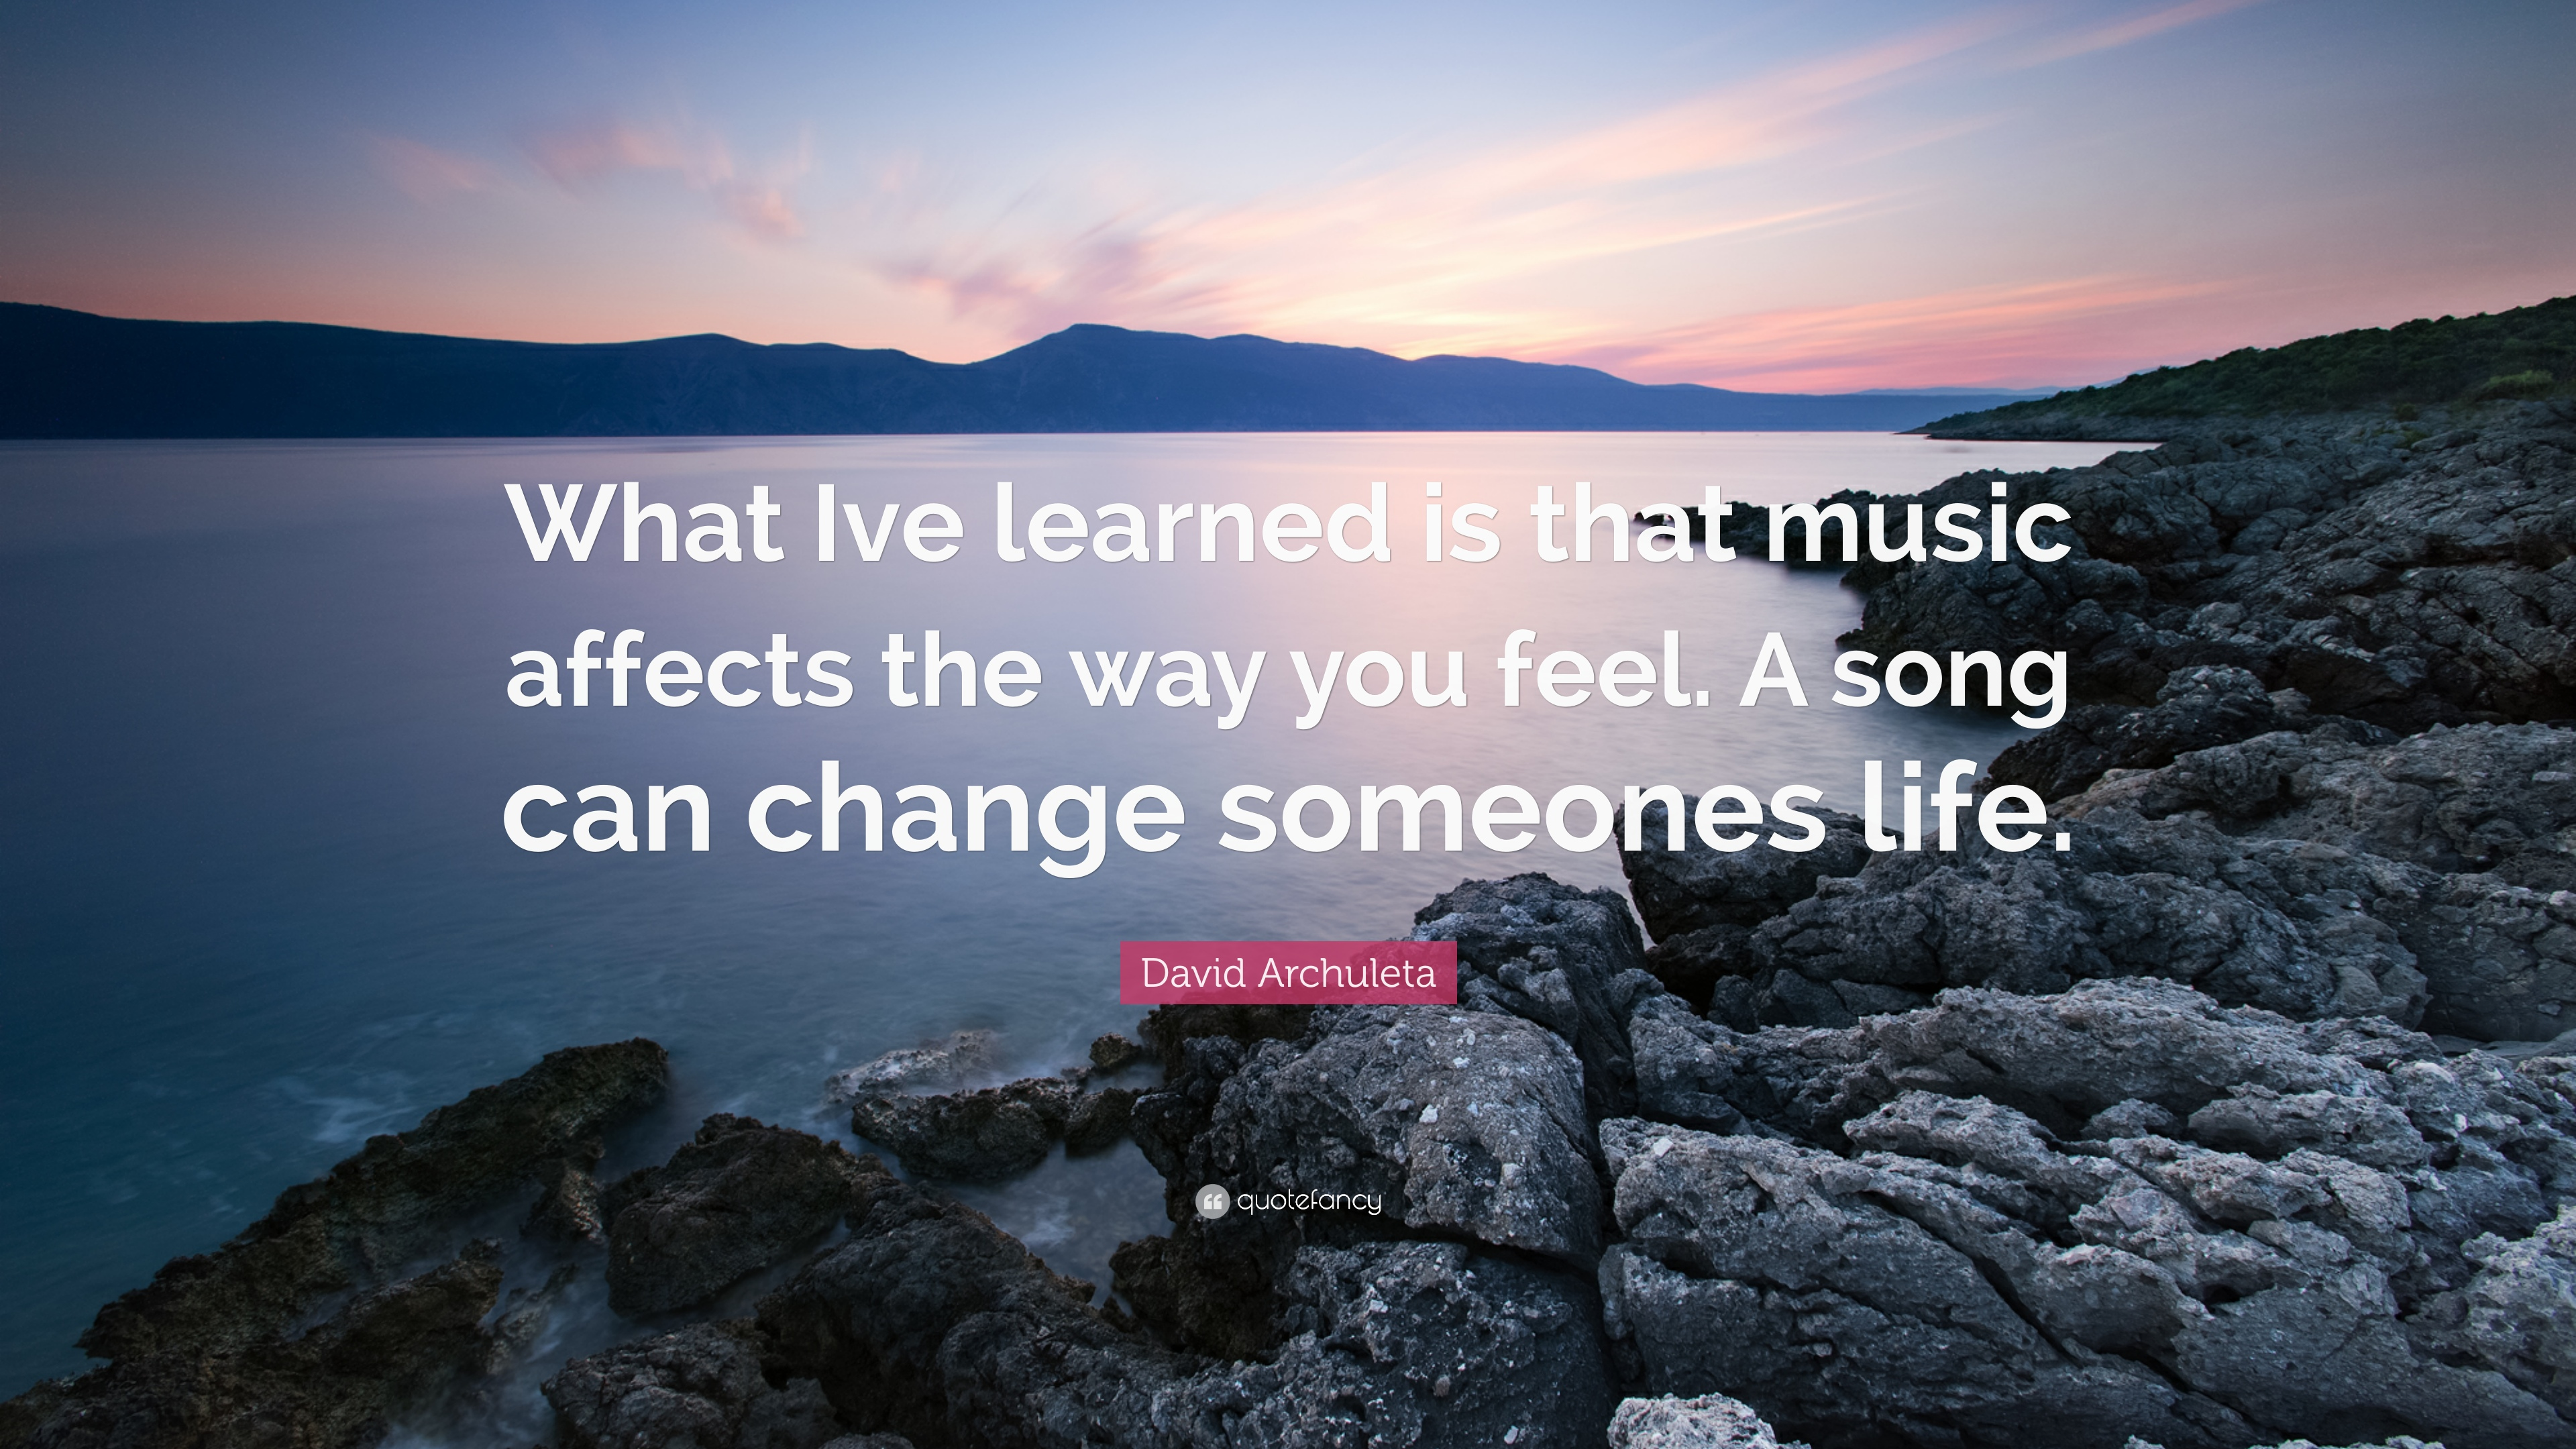 how music affects life